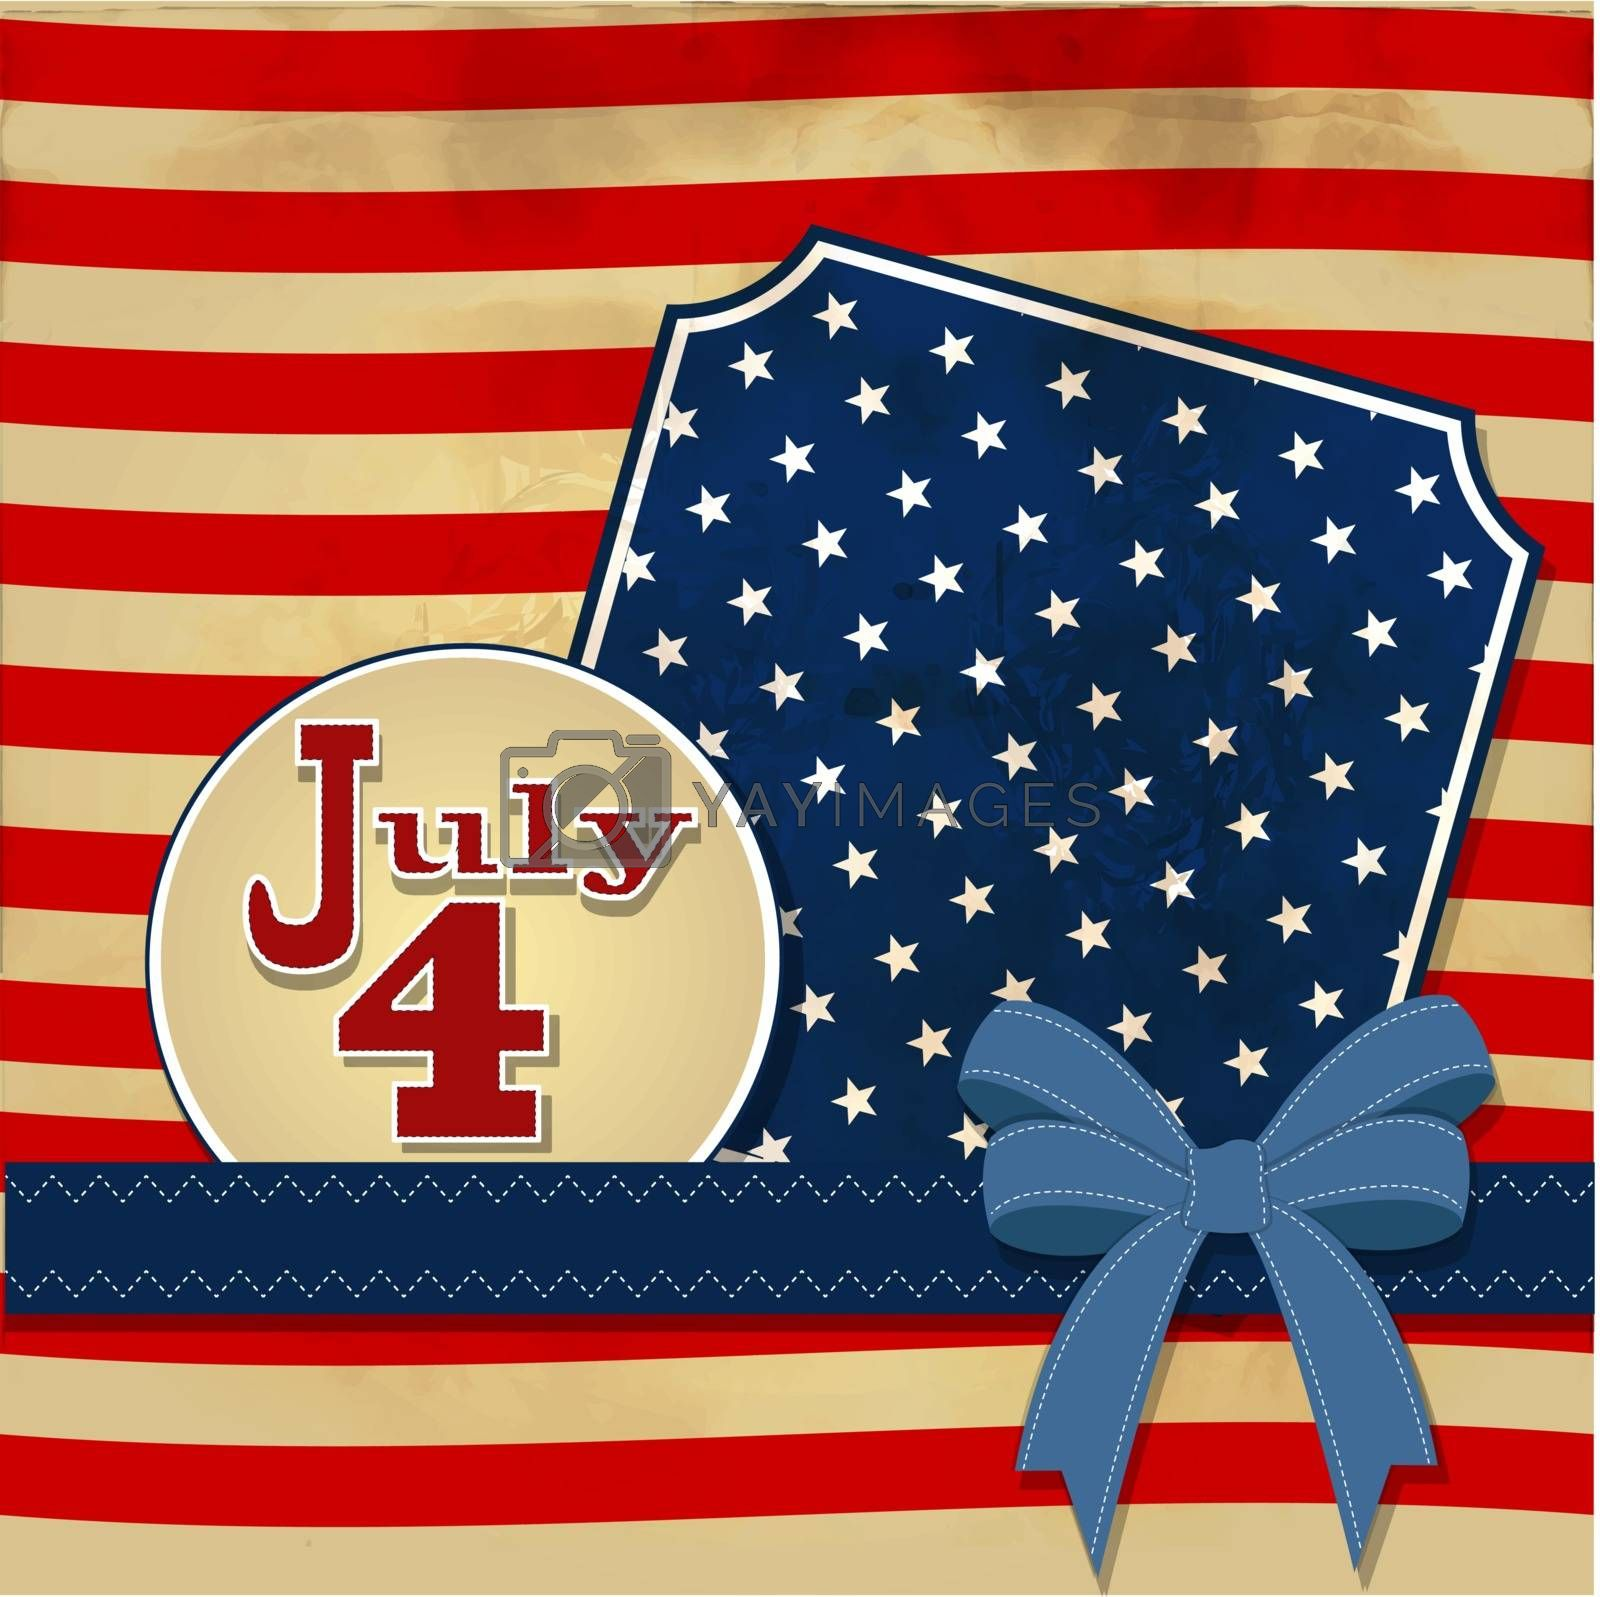 American flag background with stars symbolizing 4th july independence day, illustration in vector format